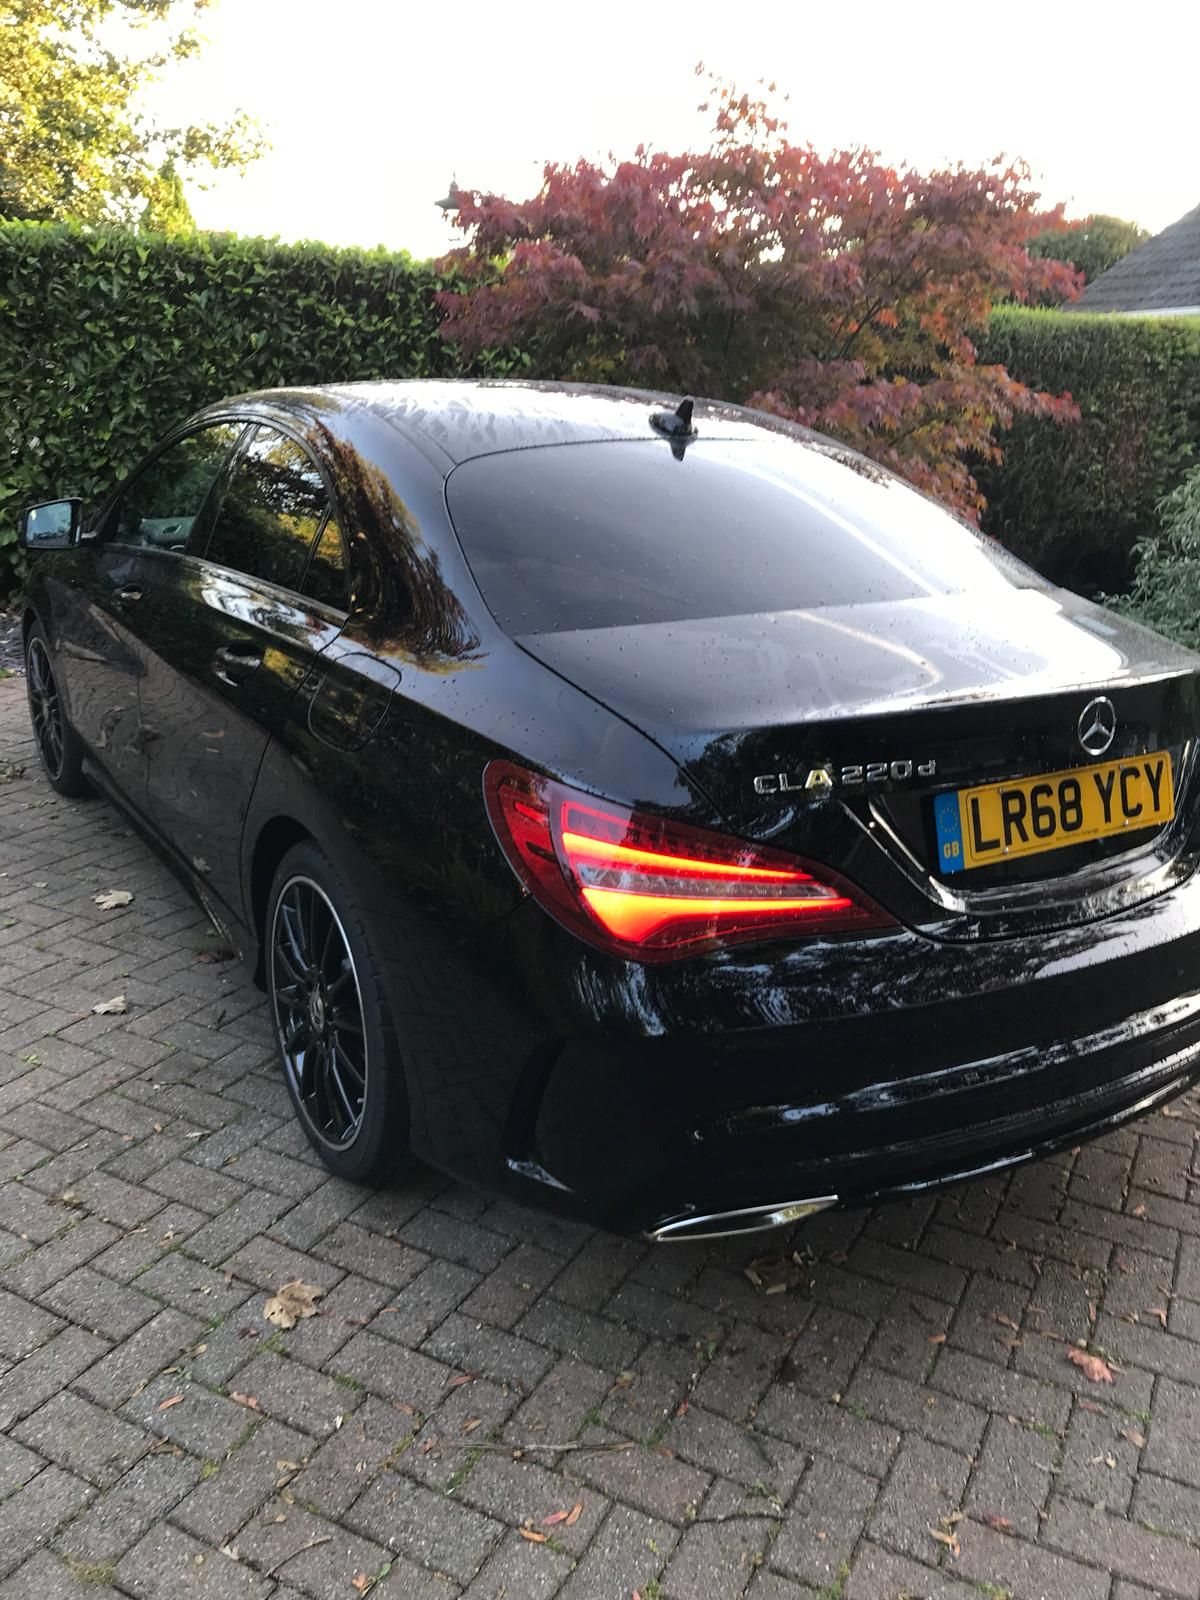 The Mercedes Benz Cla Class Diesel Coupe 220d Amg Line Night